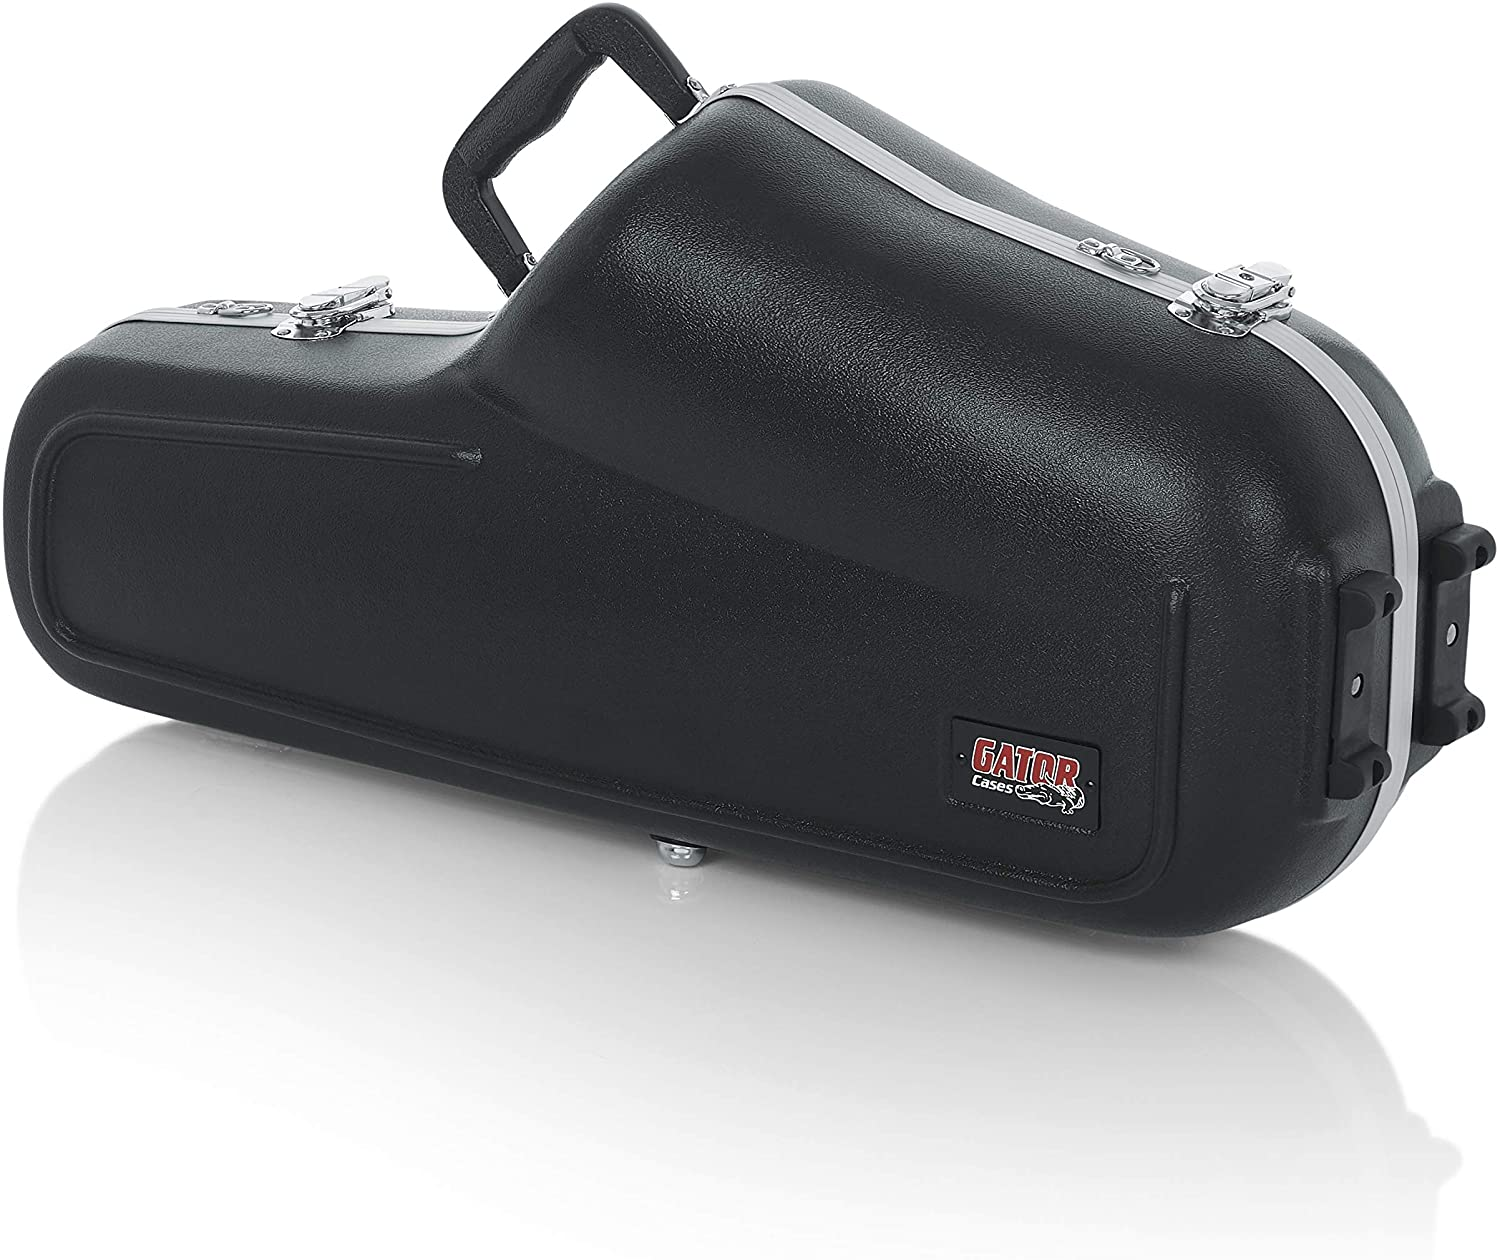 B0002CZTHA Gator Cases Lightweight Molded Alto Saxophone Case with Locking Latch and Plush Lined Interior; (GC-ALTO SAX) 81R28NWDCBL